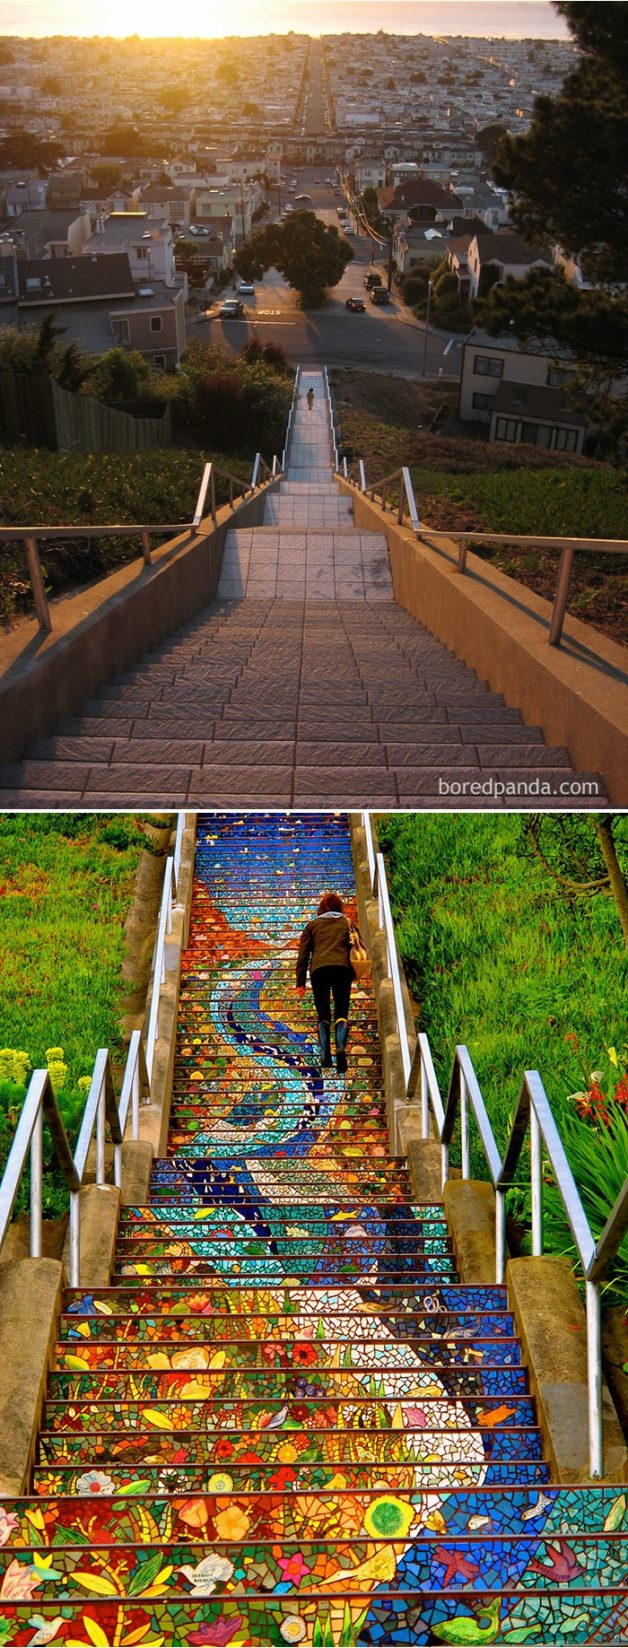 before-after-street-art-boring-wall-transformation-74-580f57fbe7be6__700